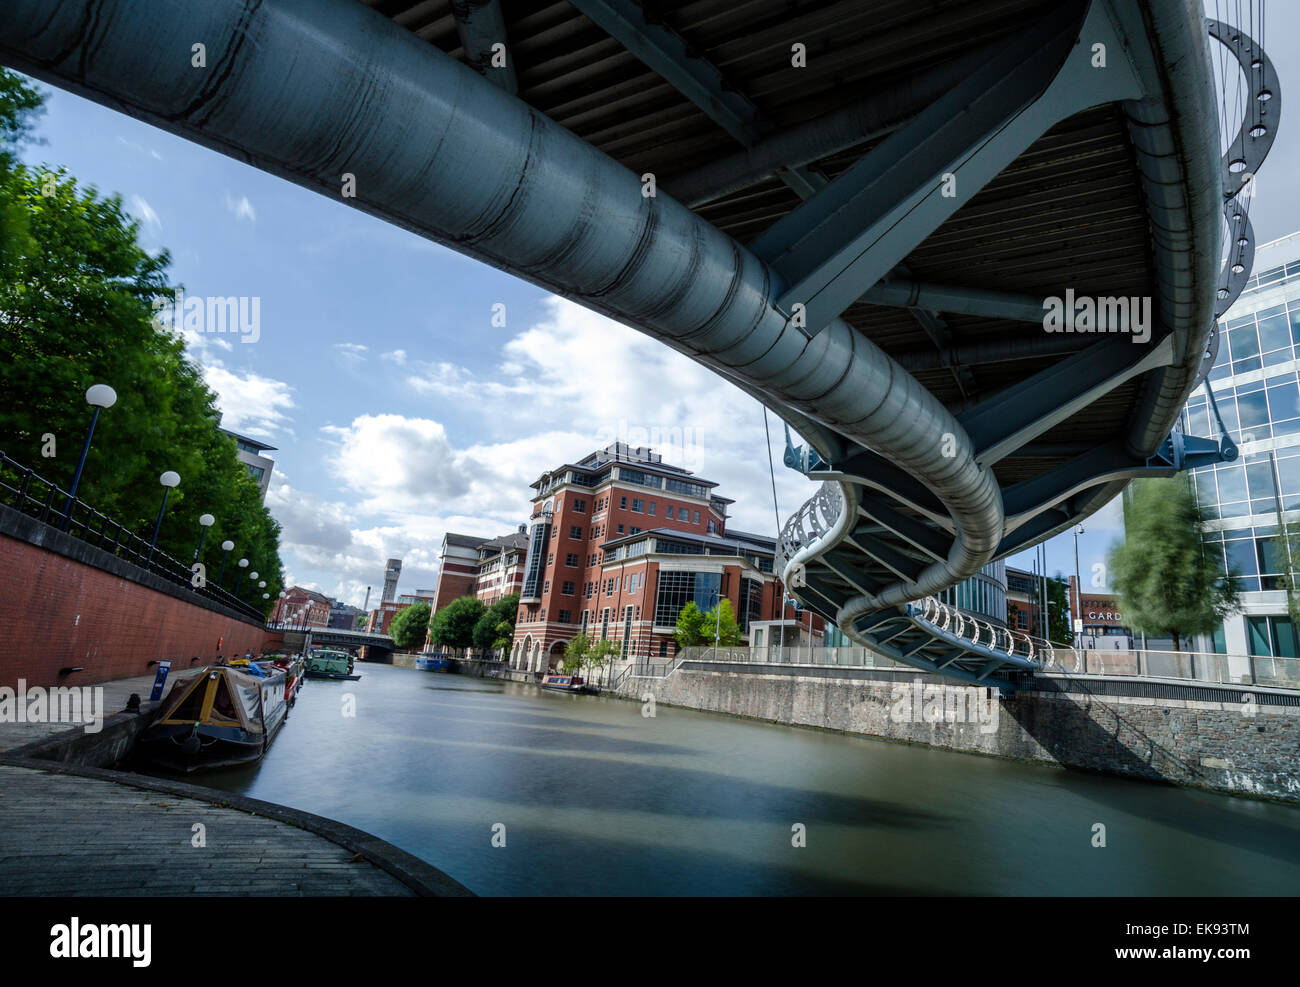 The snaky shape of Valentine's Bridge shot from below in the Temple Quay area of Bristol. Long exposure. - Stock Image